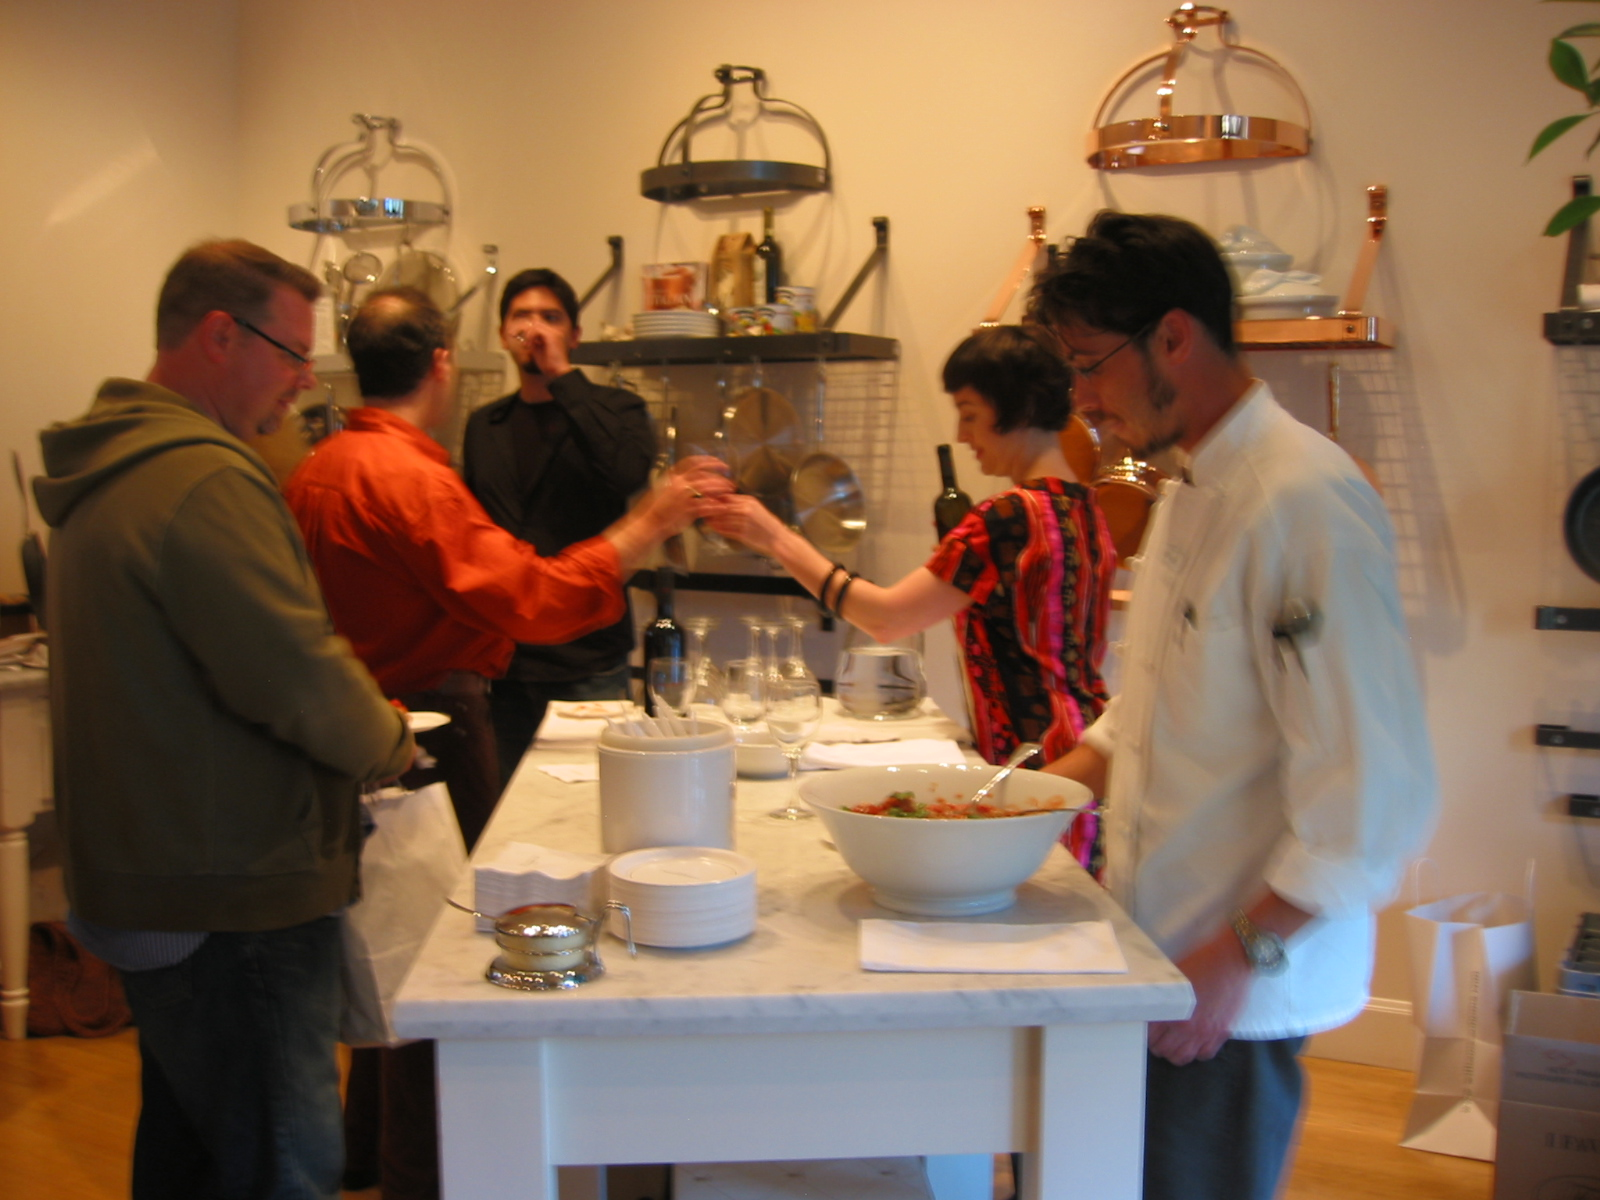 The red wine pairing was so popular, a line trailed from the serving table halfway through the room.